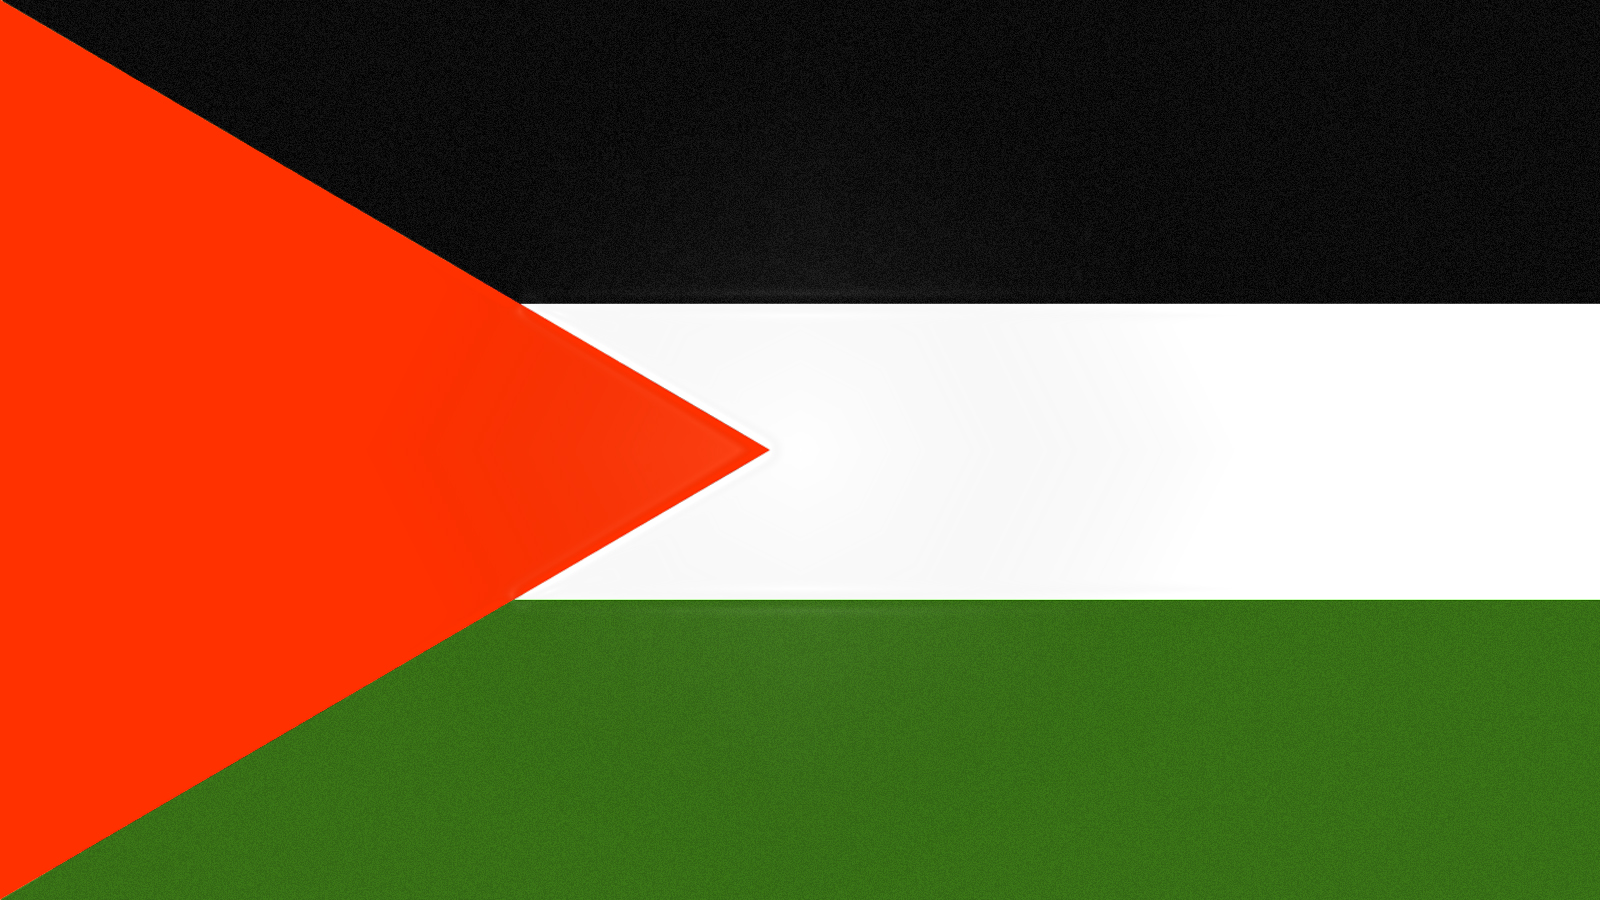 Palestine Flag HD Wallpaper